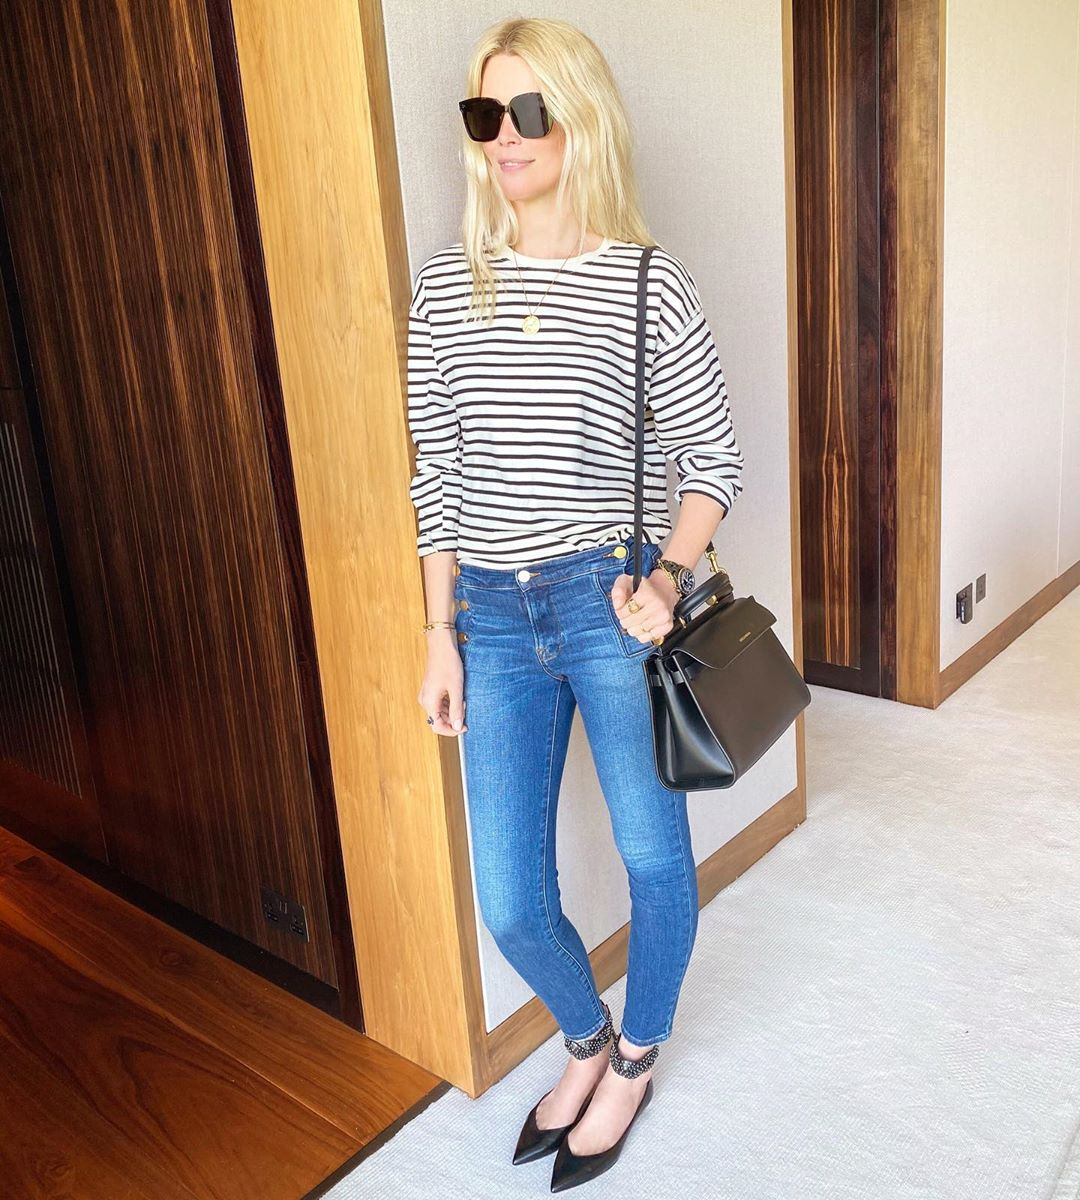 A Striped T-Shirt is a Classic Wardrobe Essential